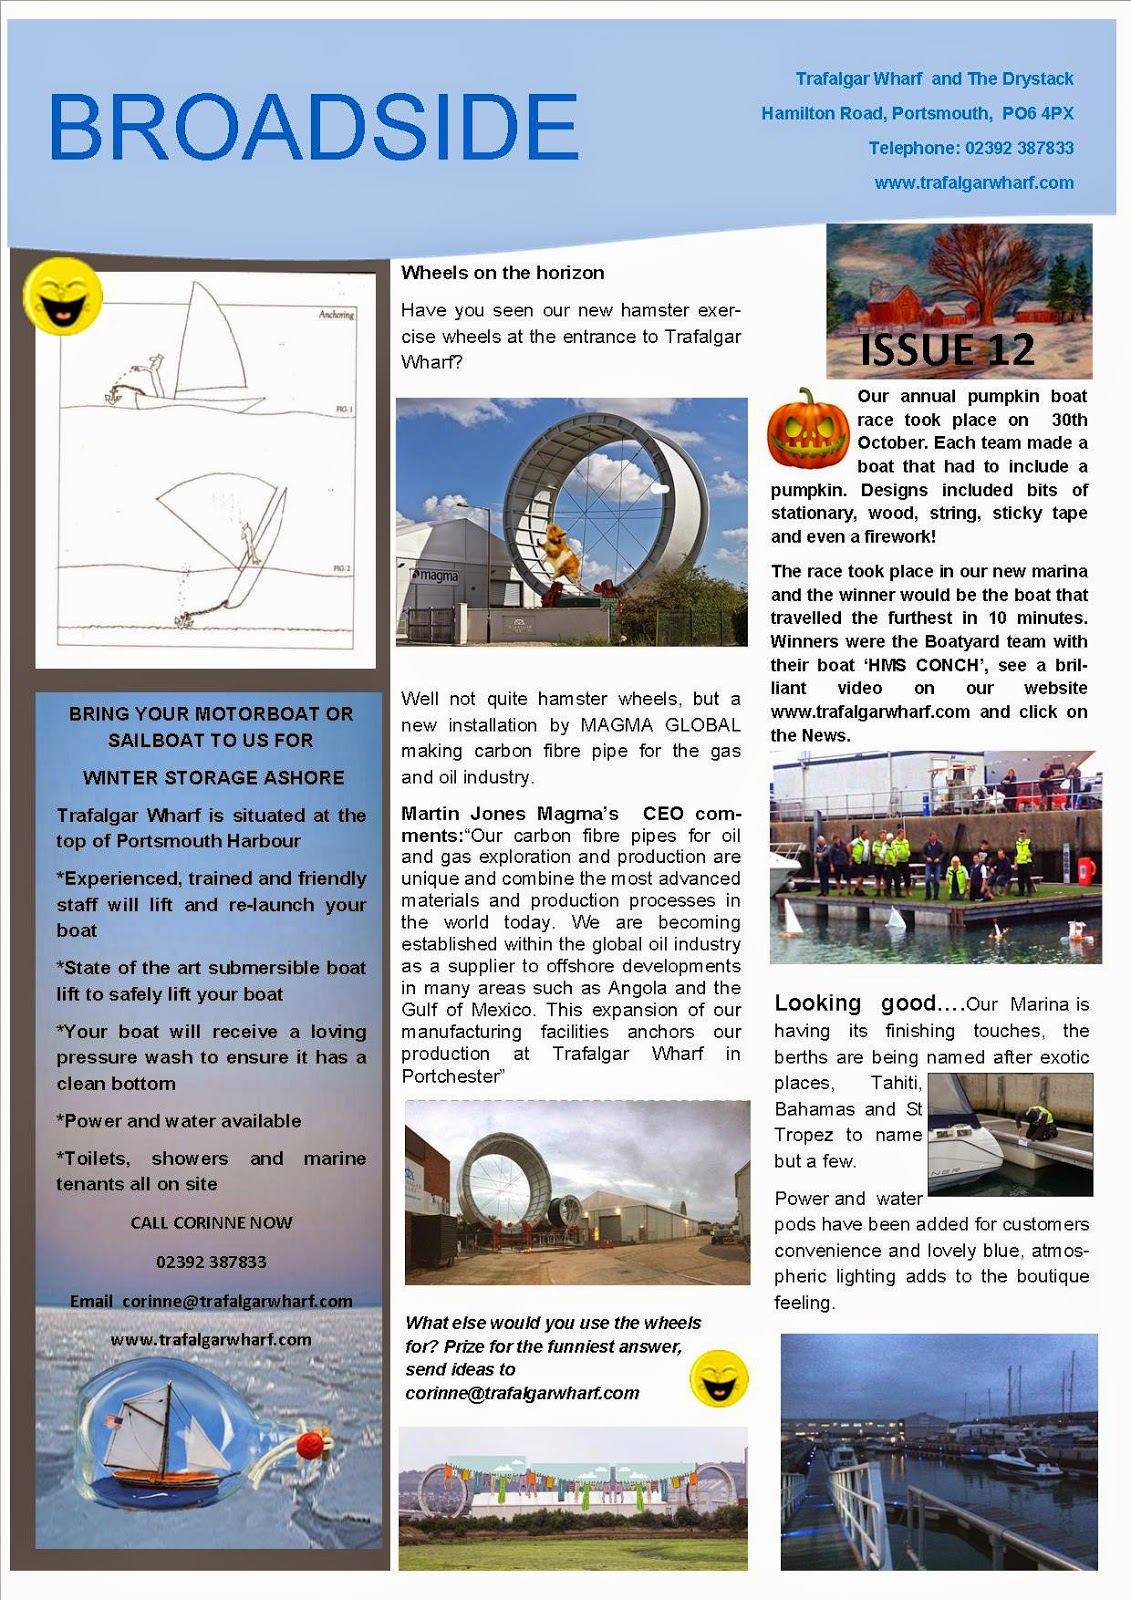 Trafalgar Wharf Newsletter Issue 12